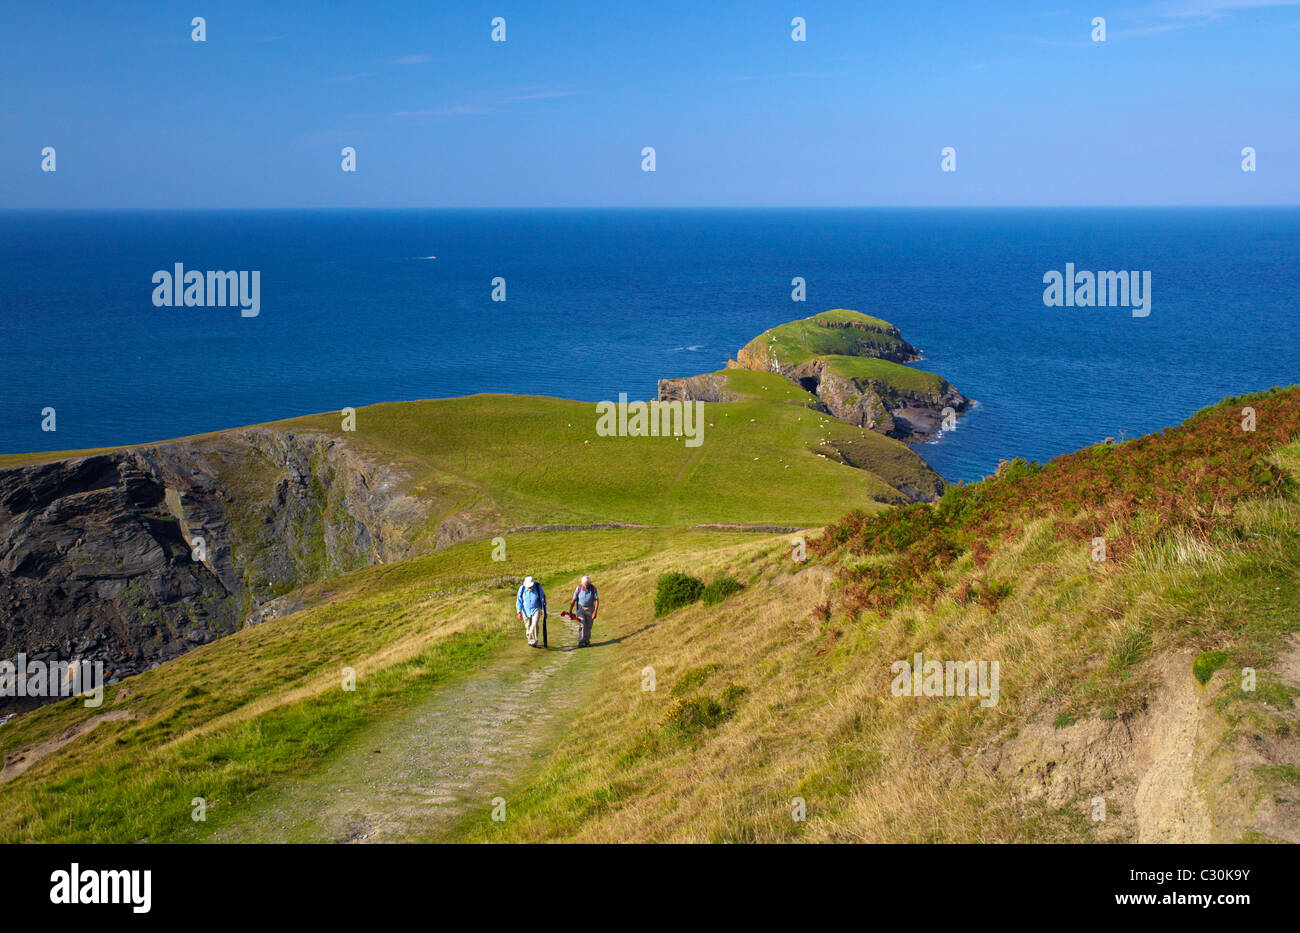 Anglers walking back from Ynys Lochtyn, Llangrannog, West Wales. - Stock Image